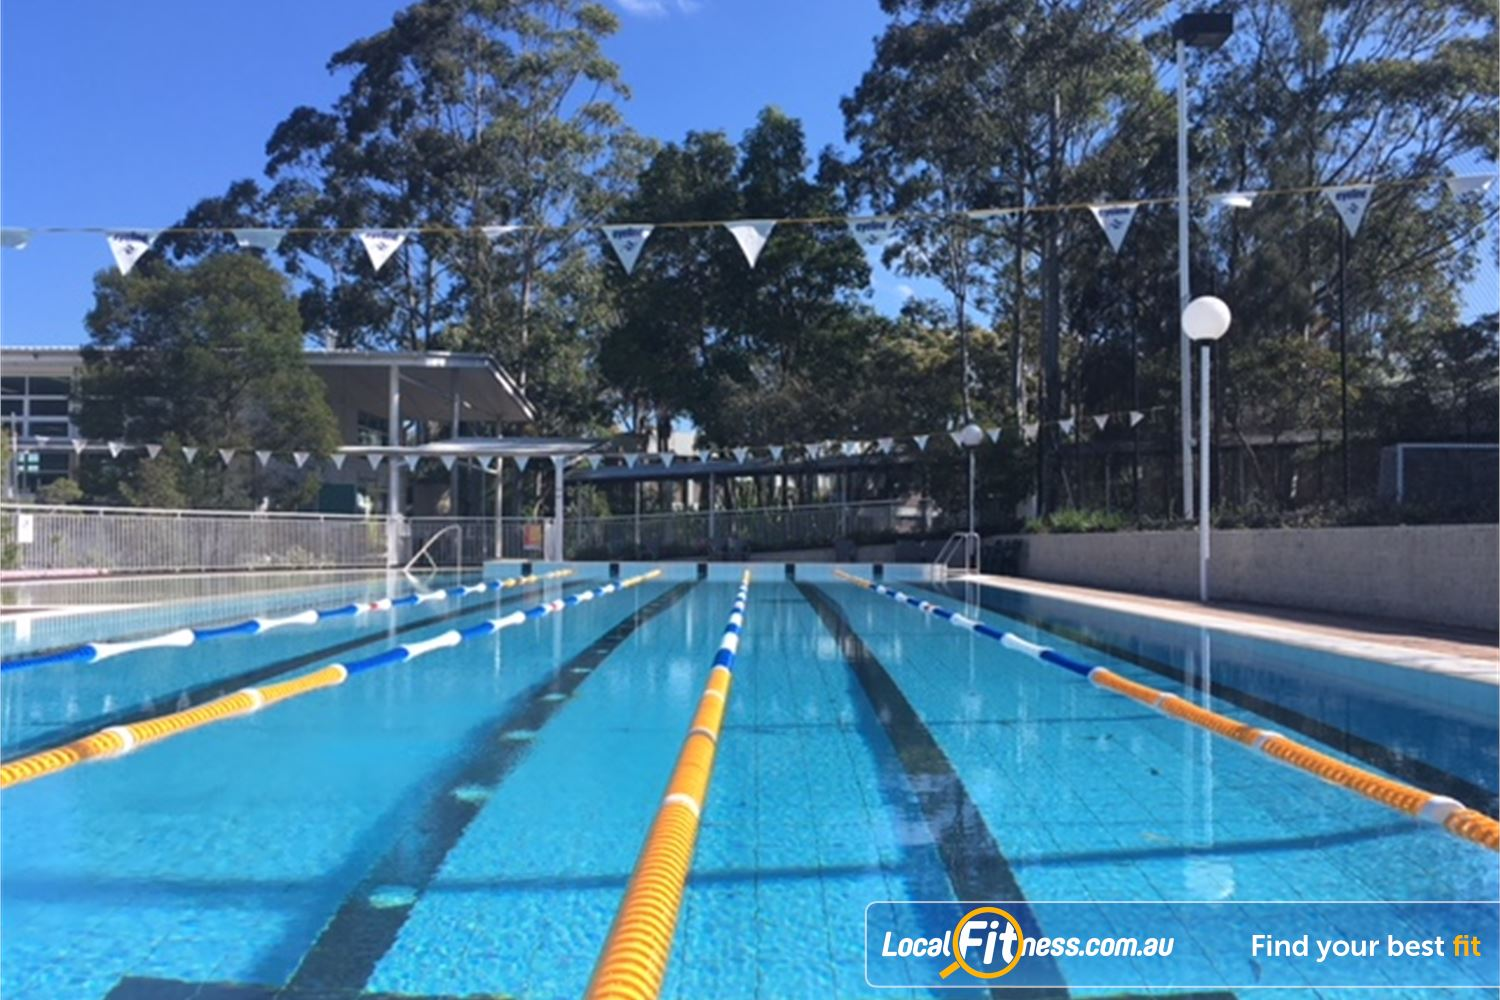 North Ryde Fitness & Aquatic North Ryde The heated 25m outdoor North Ryde swimming pool at NRFA.